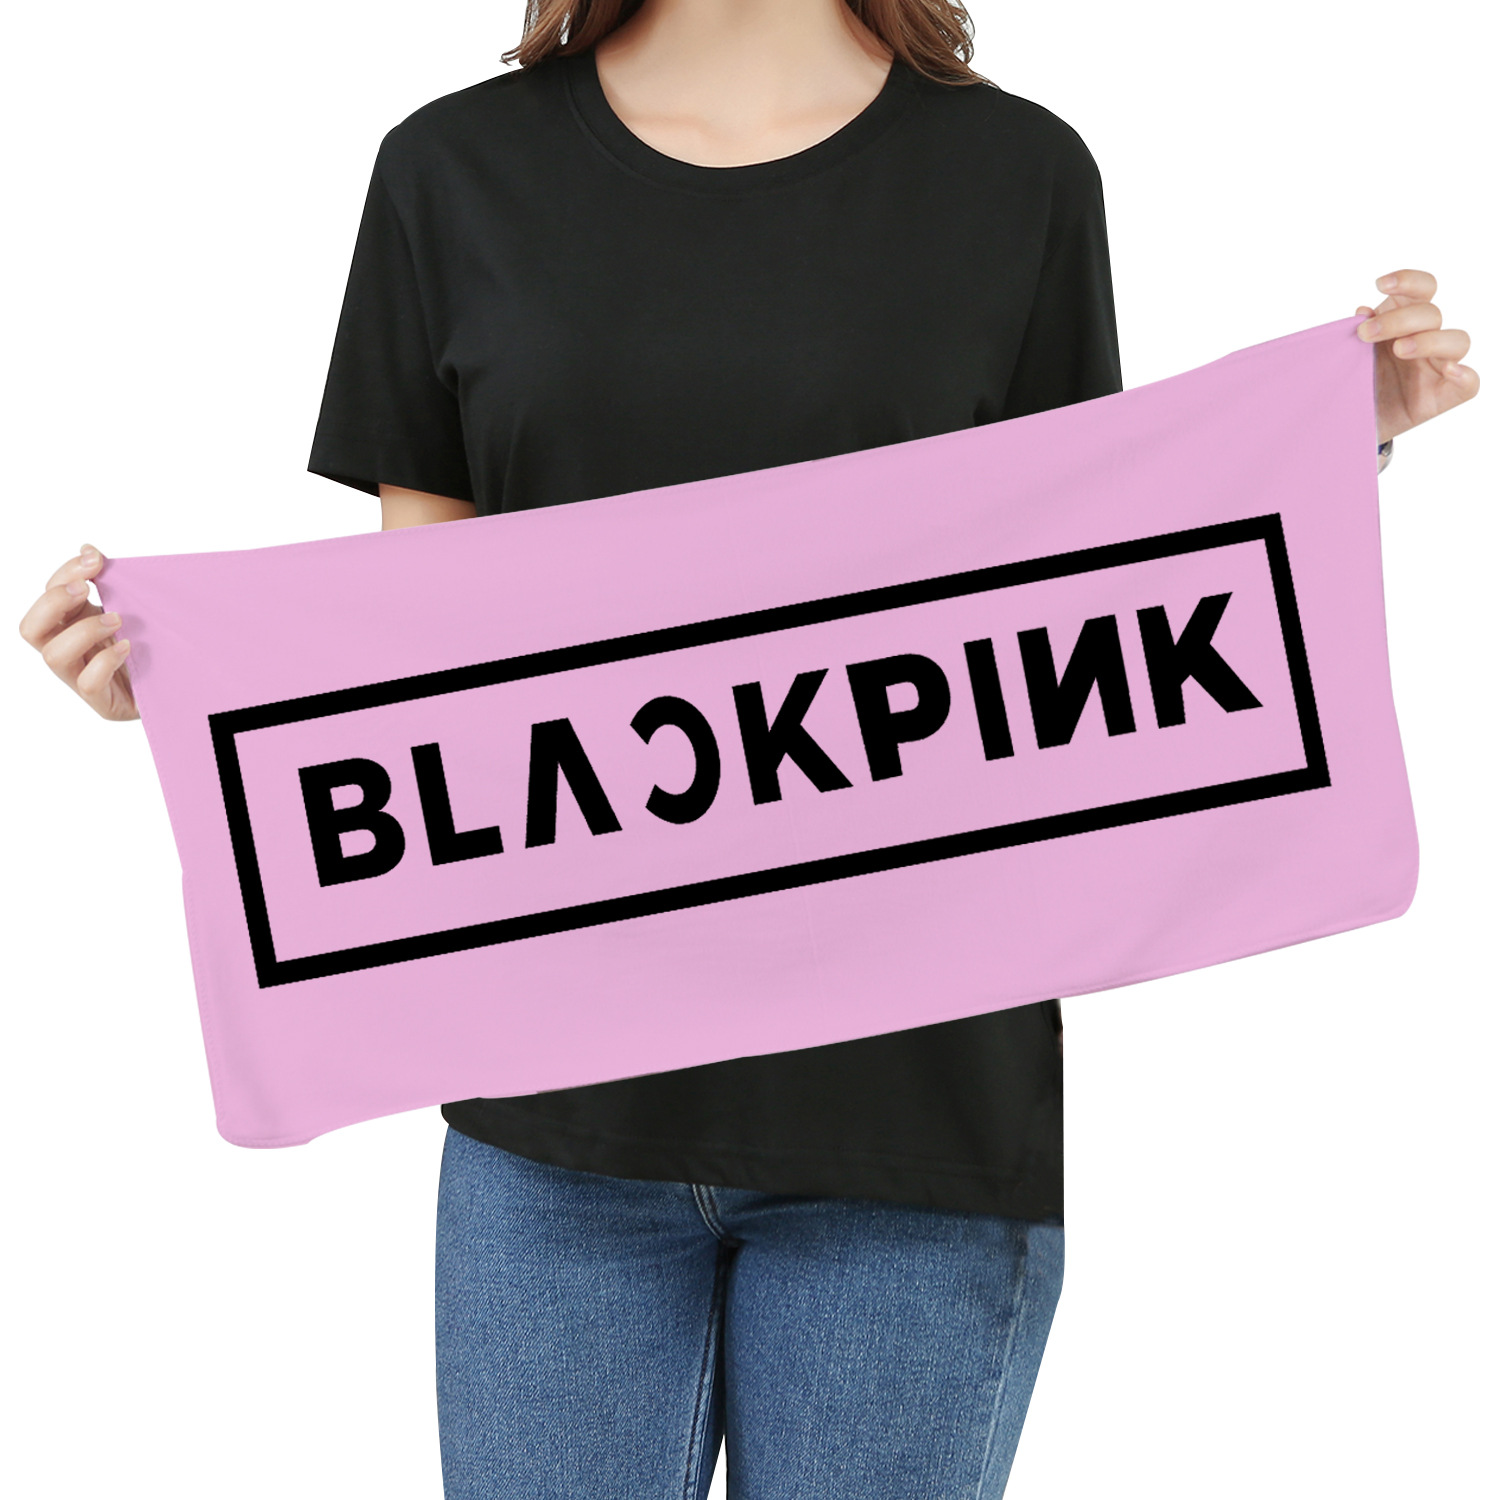 Blackpink Kpop 2019 New Peripheral Towel Wash Bath Towel Face Towel Home Soft Absorbent Small Square Men And Women